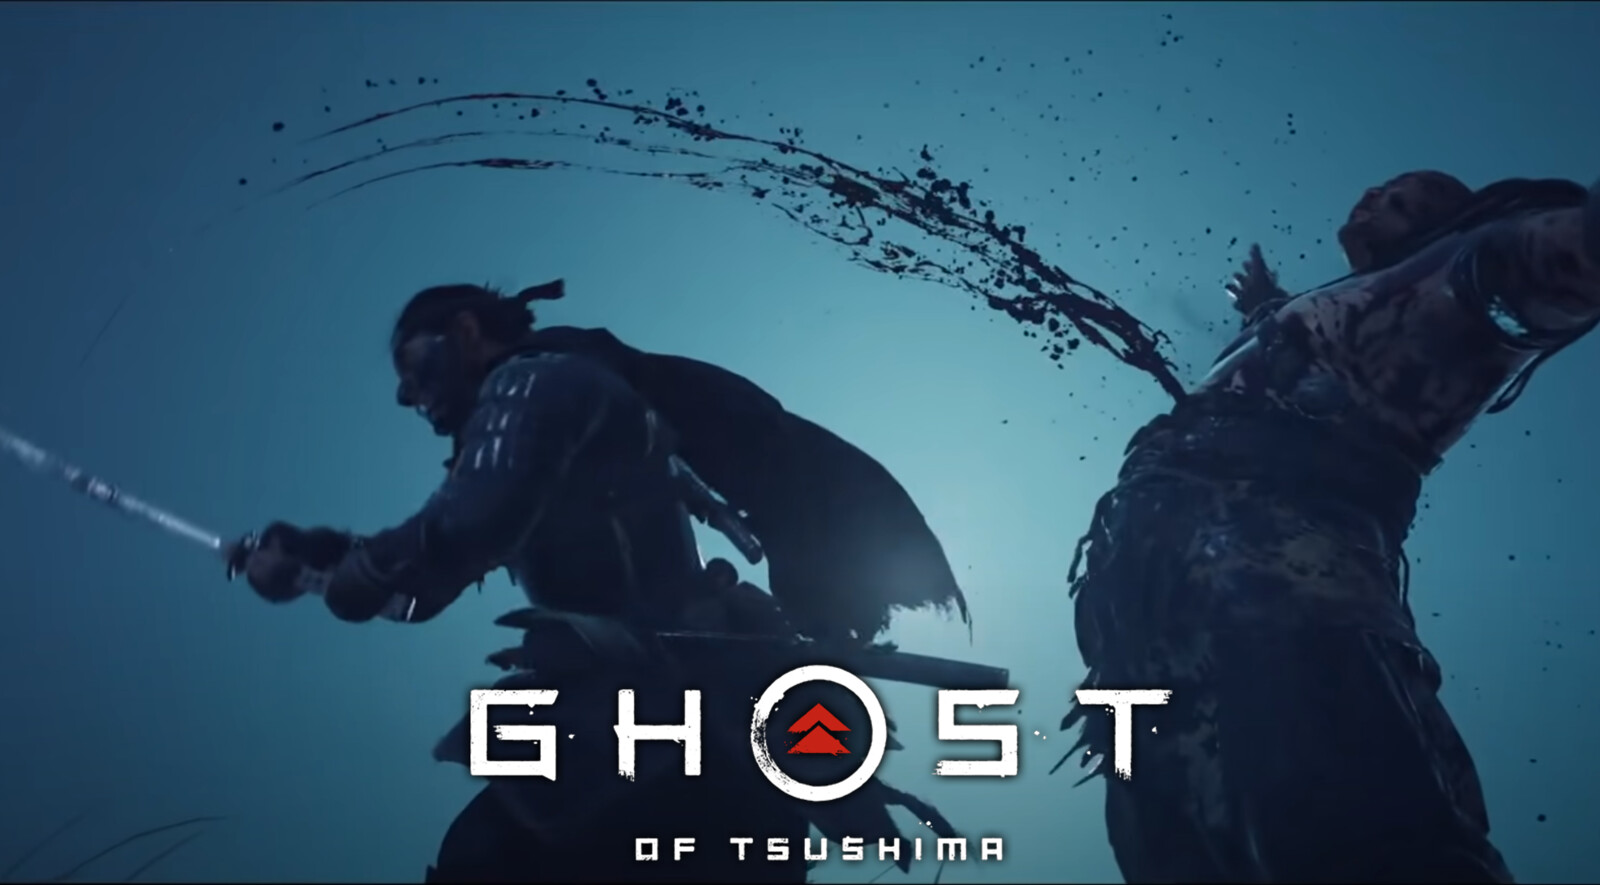 GHOST OF TSUSHIMA - VFX work